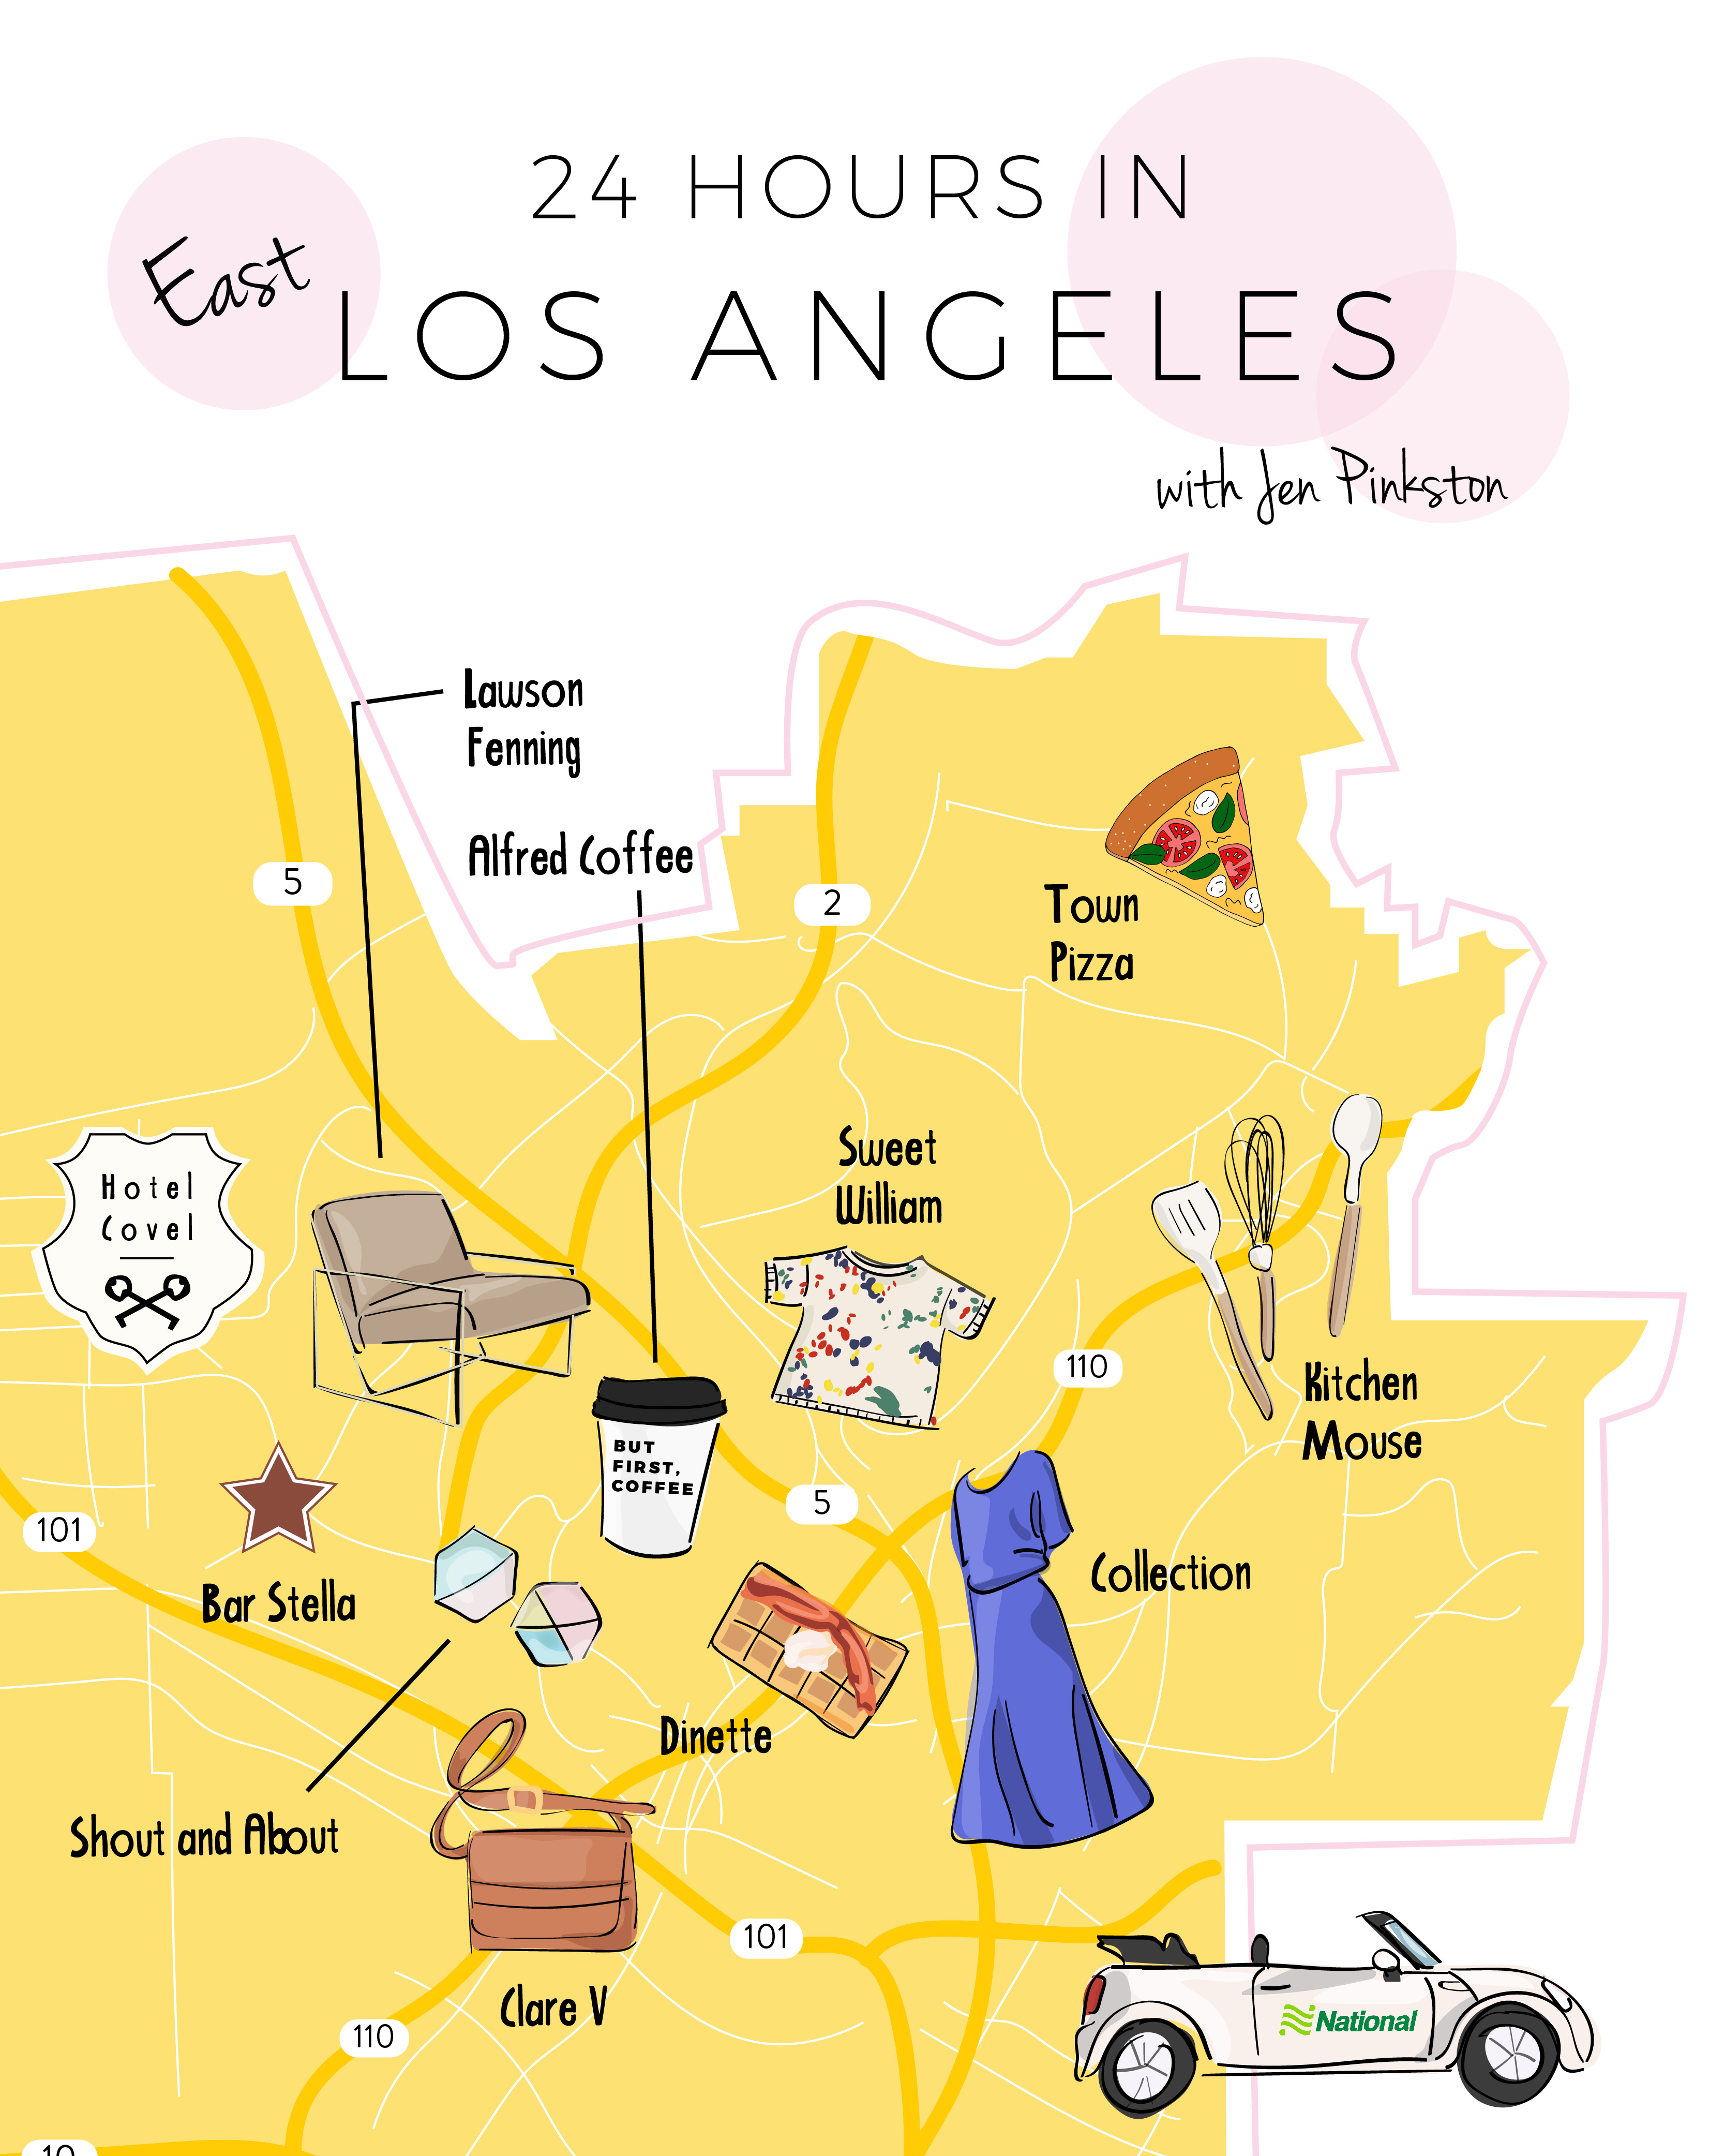 EffortlessChic_24 Hours in Los Angeles Map-01